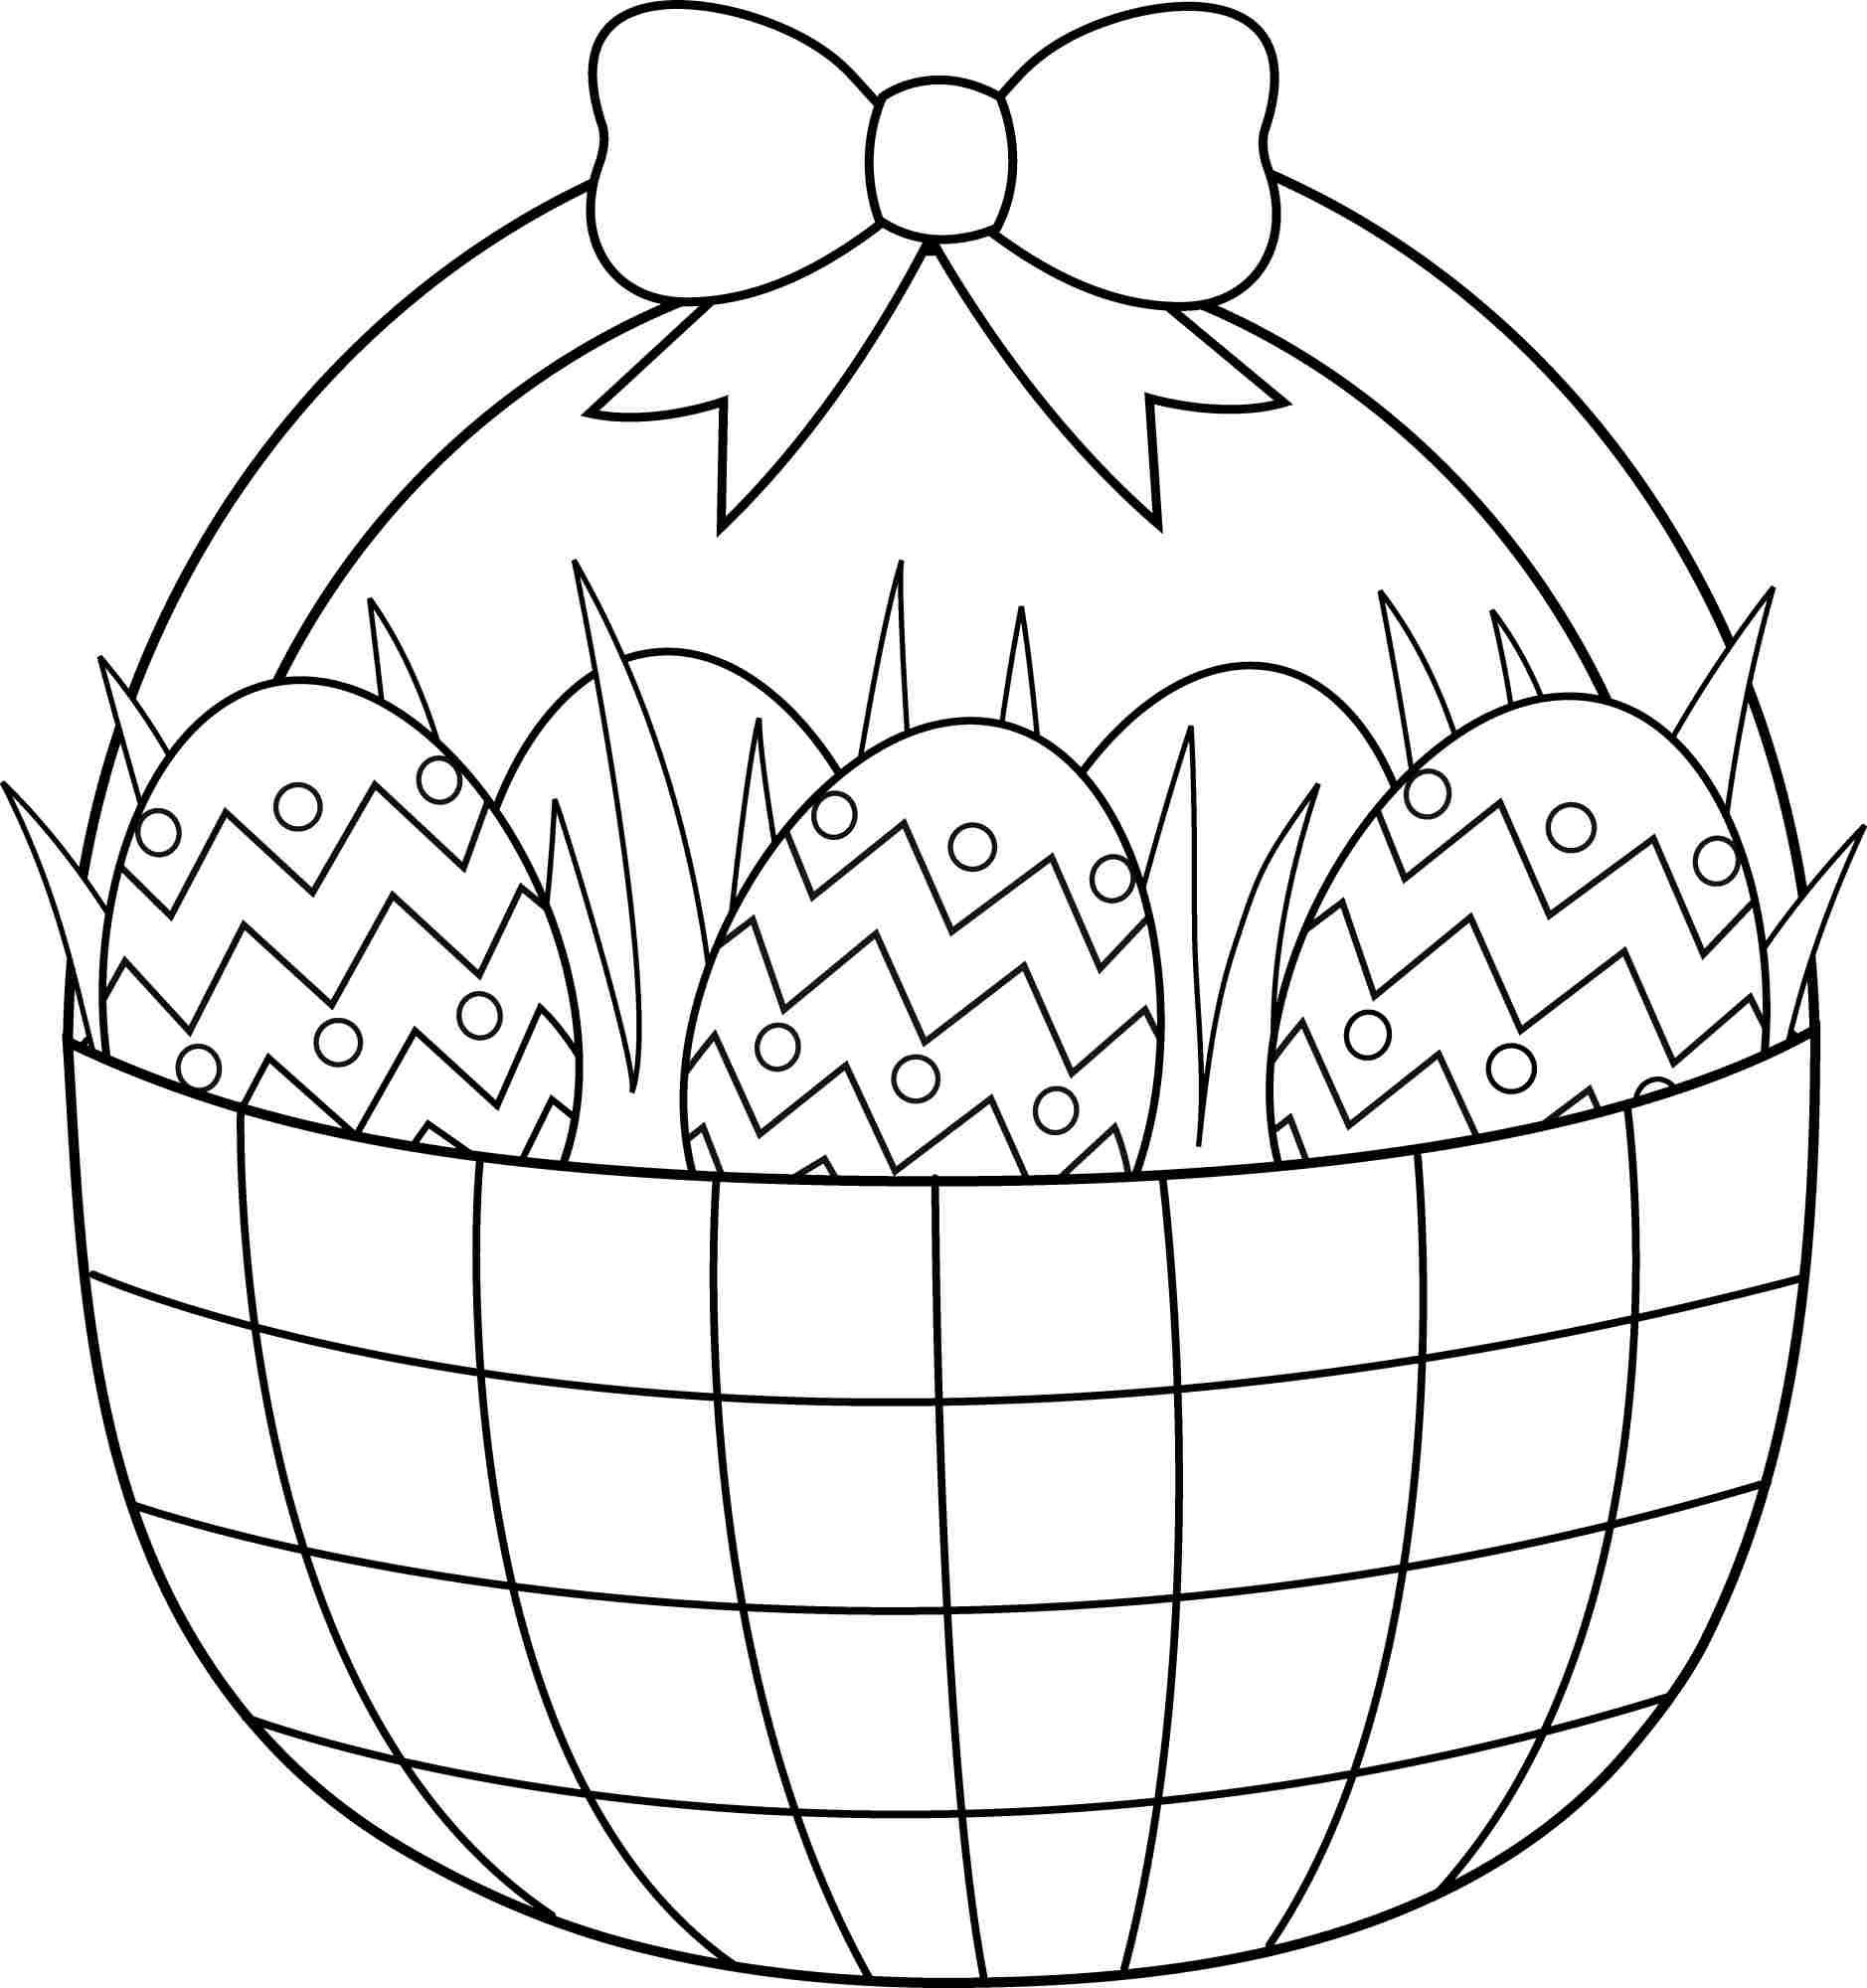 easter basket coloring pages 27 - Coloring Pages Easter Baskets